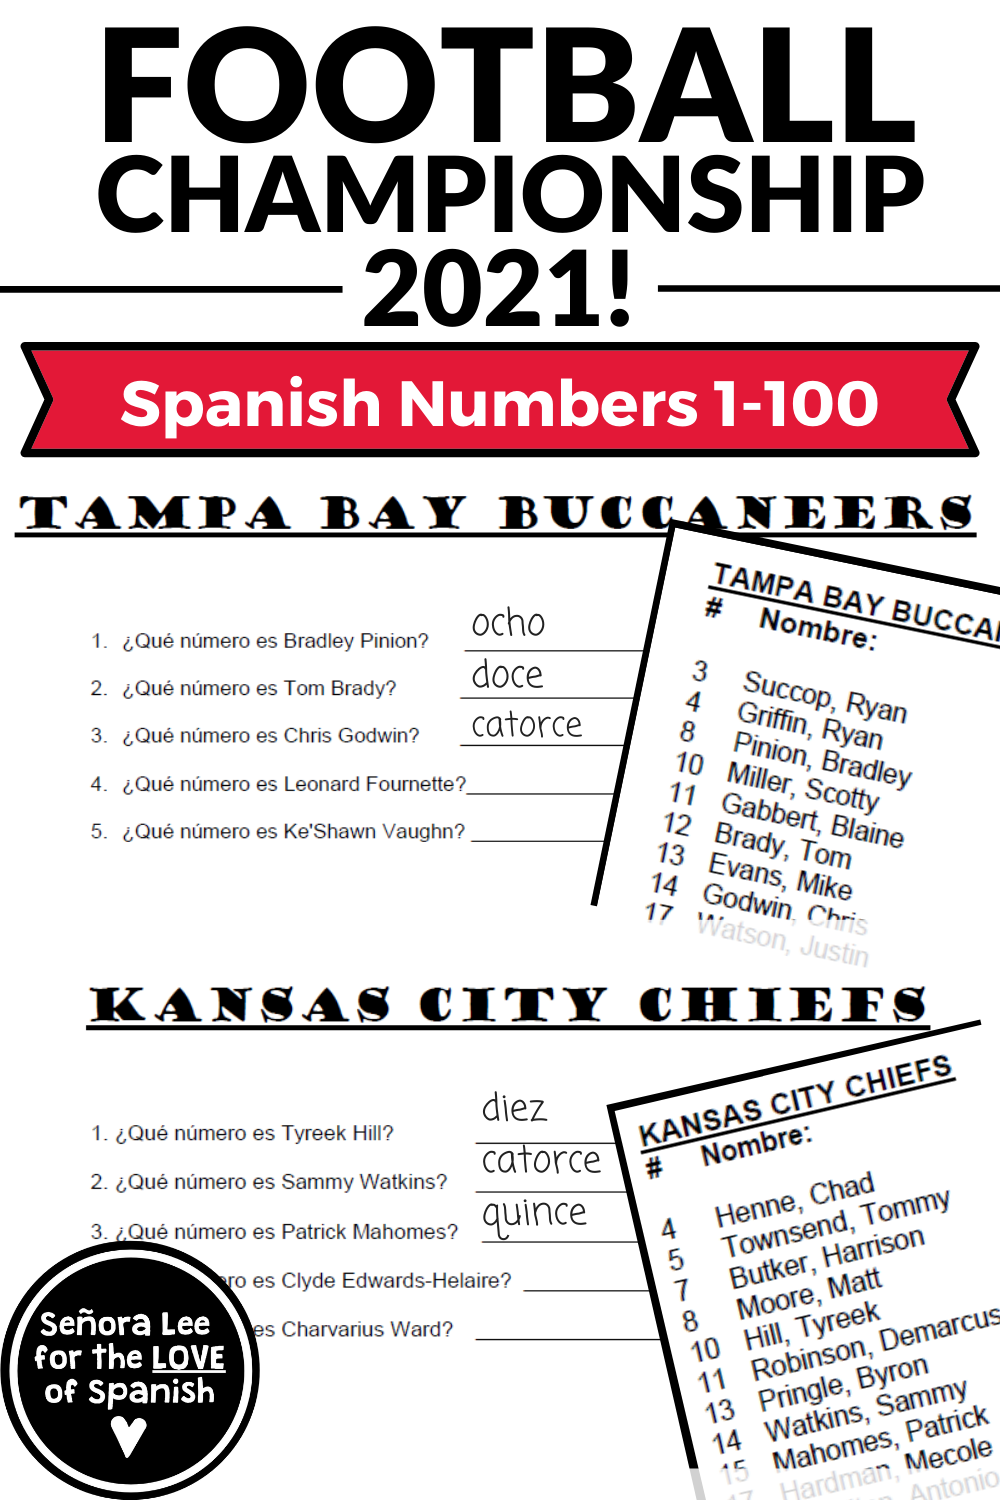 Spanish Super Bowl Activity - Write player's jersey numbers in Spanish